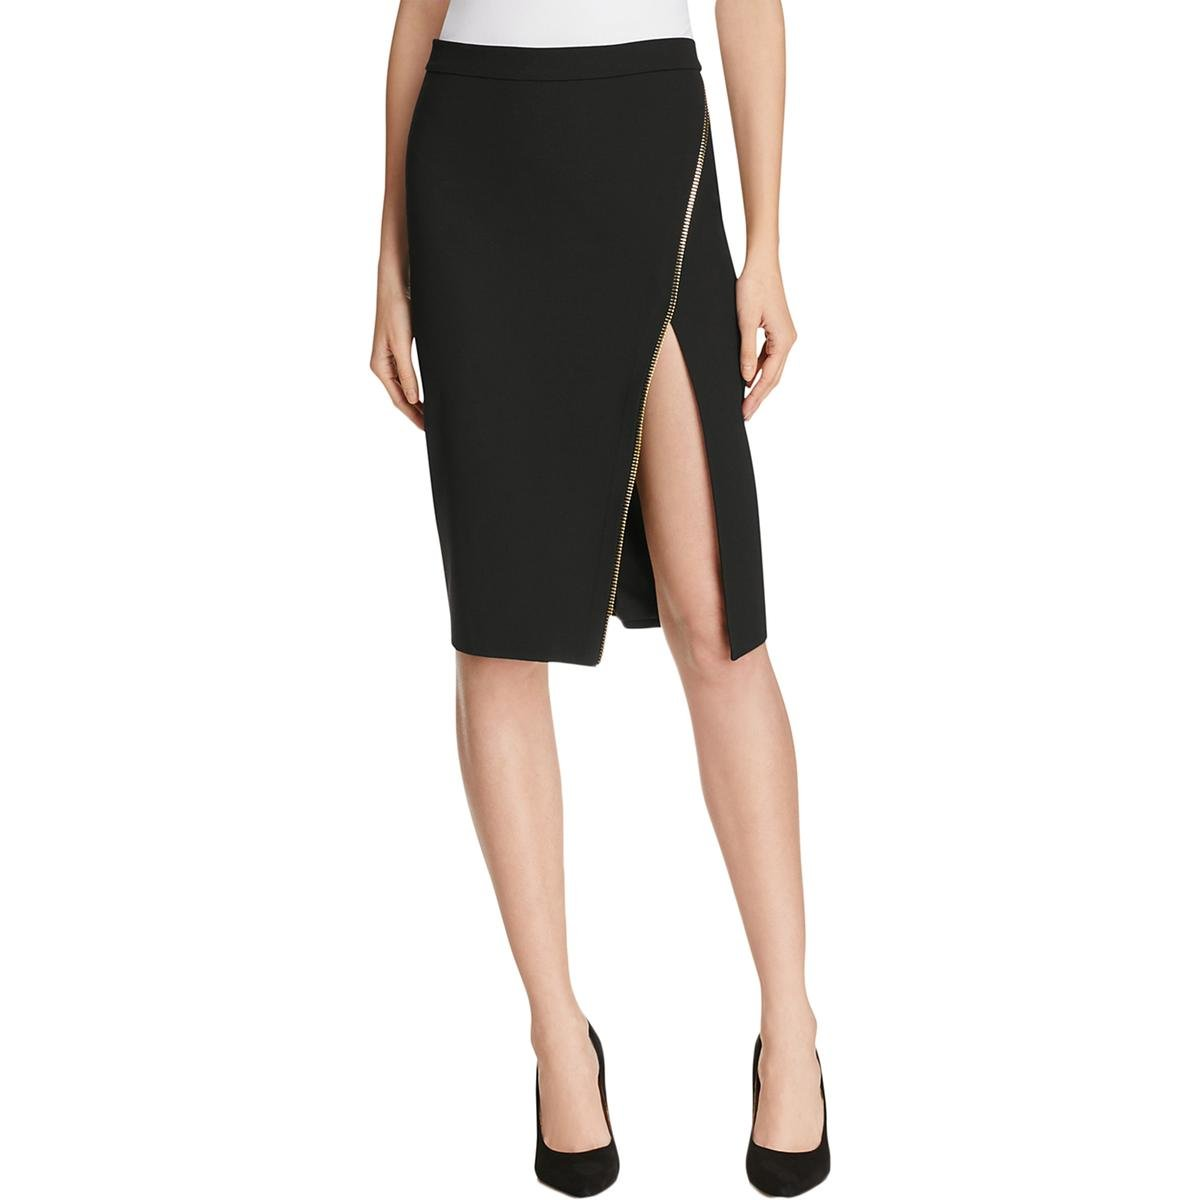 Mason by Michelle Mason Womens Zipper Textured Straight Skirt Black 4